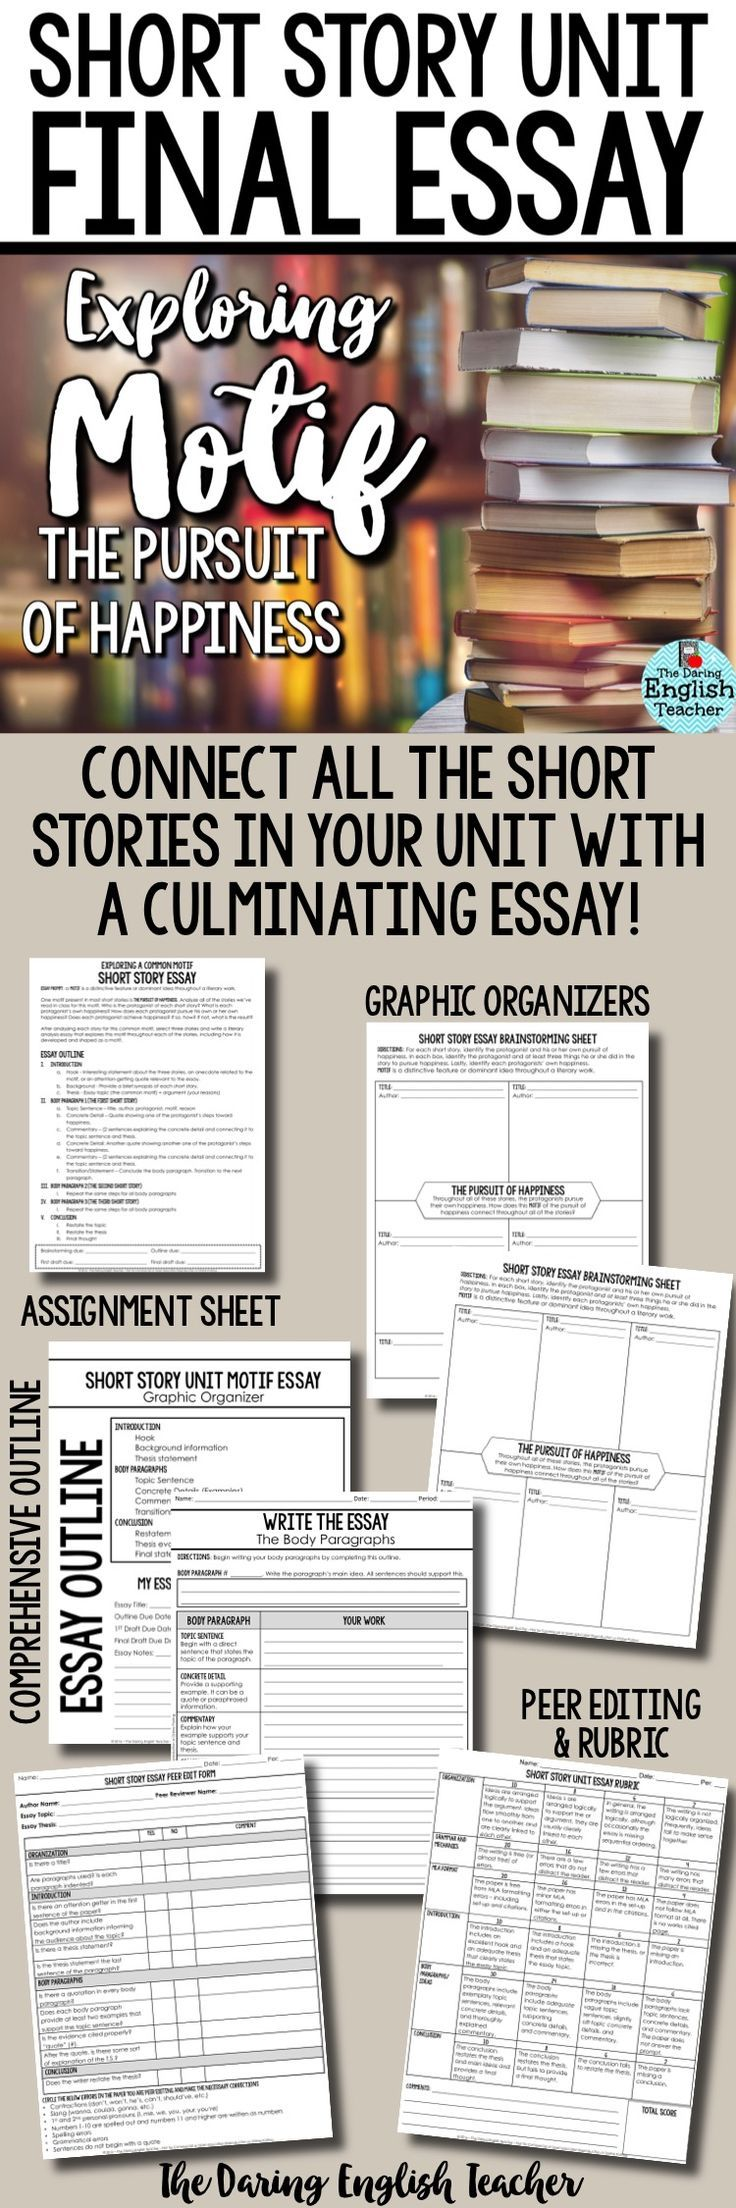 Science Essay Questions Bring Your Short Story Unit Together By Connecting Each Story To A Common  Motif High School Essay High School Writing Assignment Essays For High School Students also Essay Examples High School Short Story Unit Final Essay Analyzing Motif The Pursuit Of  Thesis In A Essay